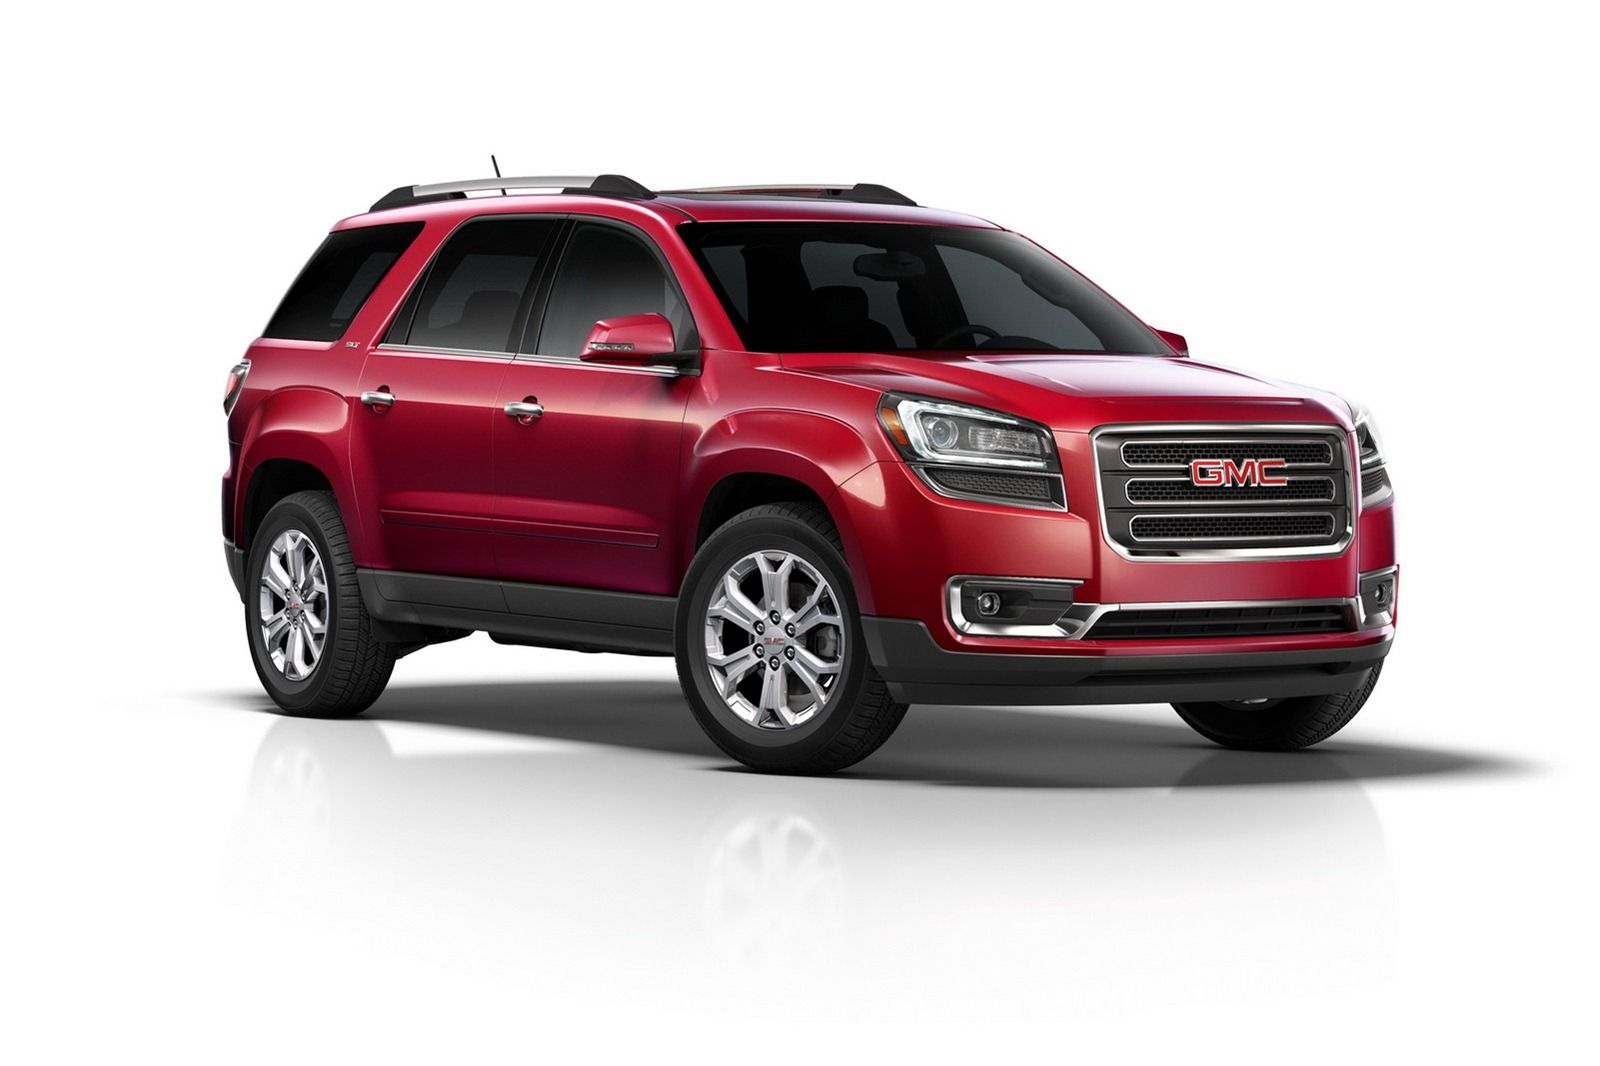 Gmc Acadia Gmc Vehicles Gmc Gmc Denali